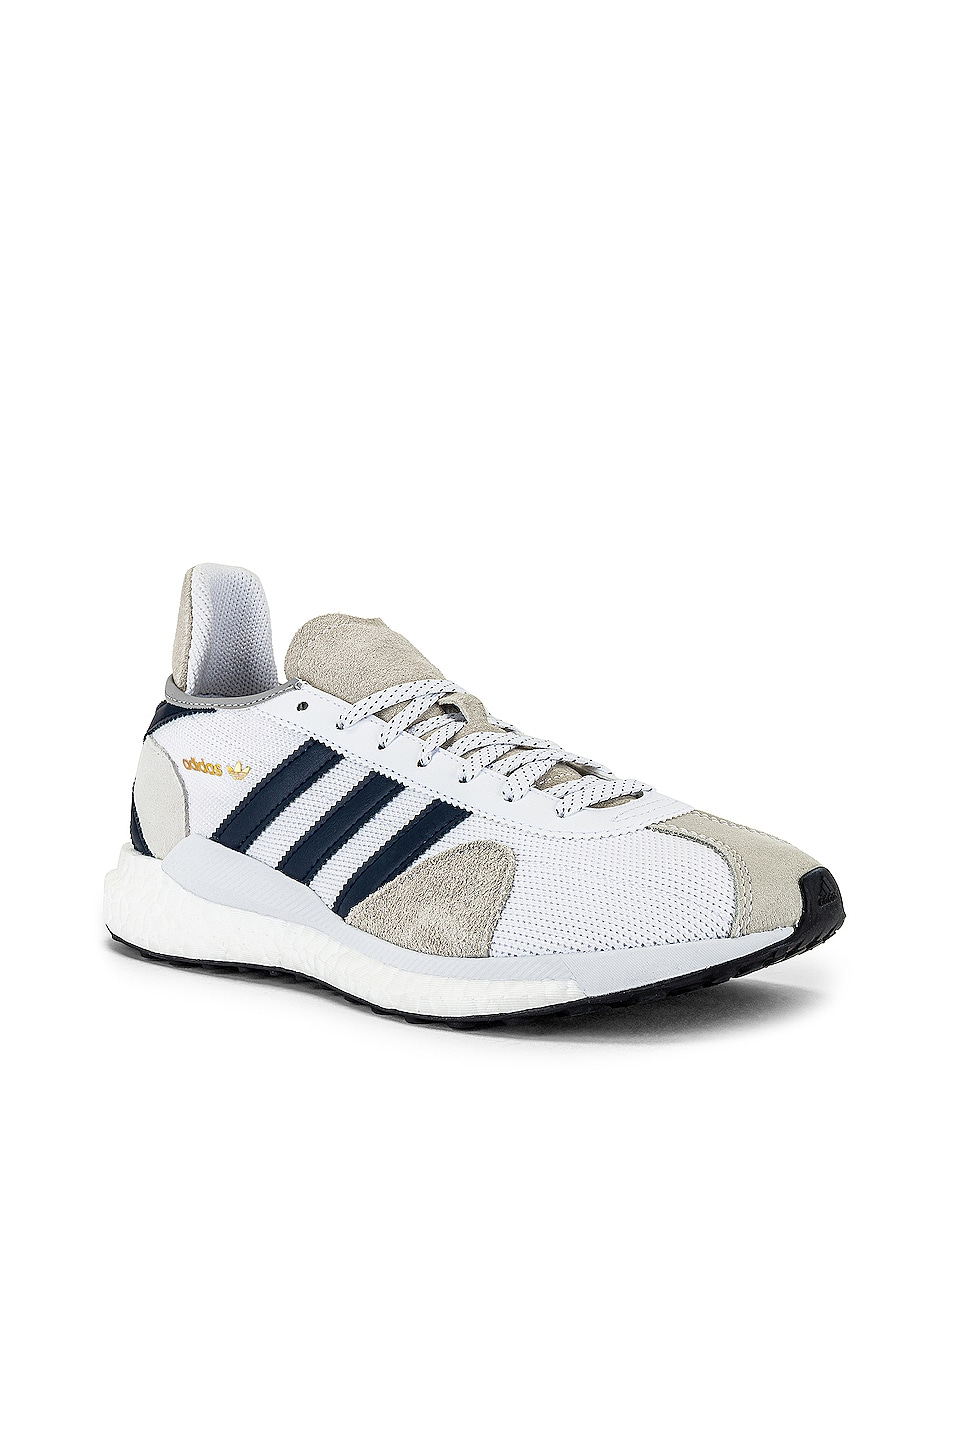 Image 1 of adidas x HUMAN MADE Tokio Solar Sneaker in White & Navy